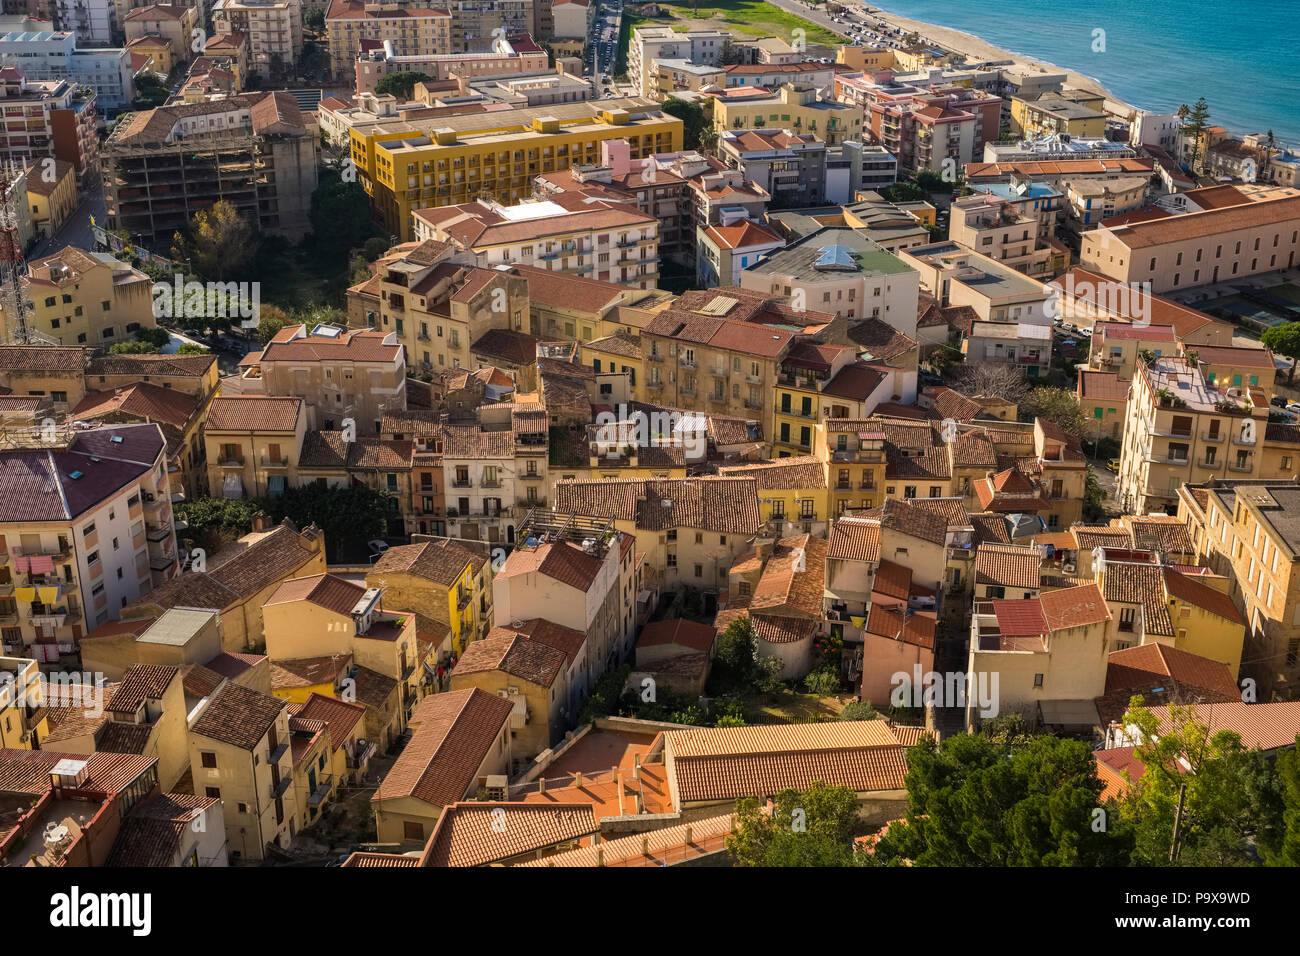 Aerial view of the architecture of the dense packed city of Cefalu, Sicily, Italy, Europe - Stock Image